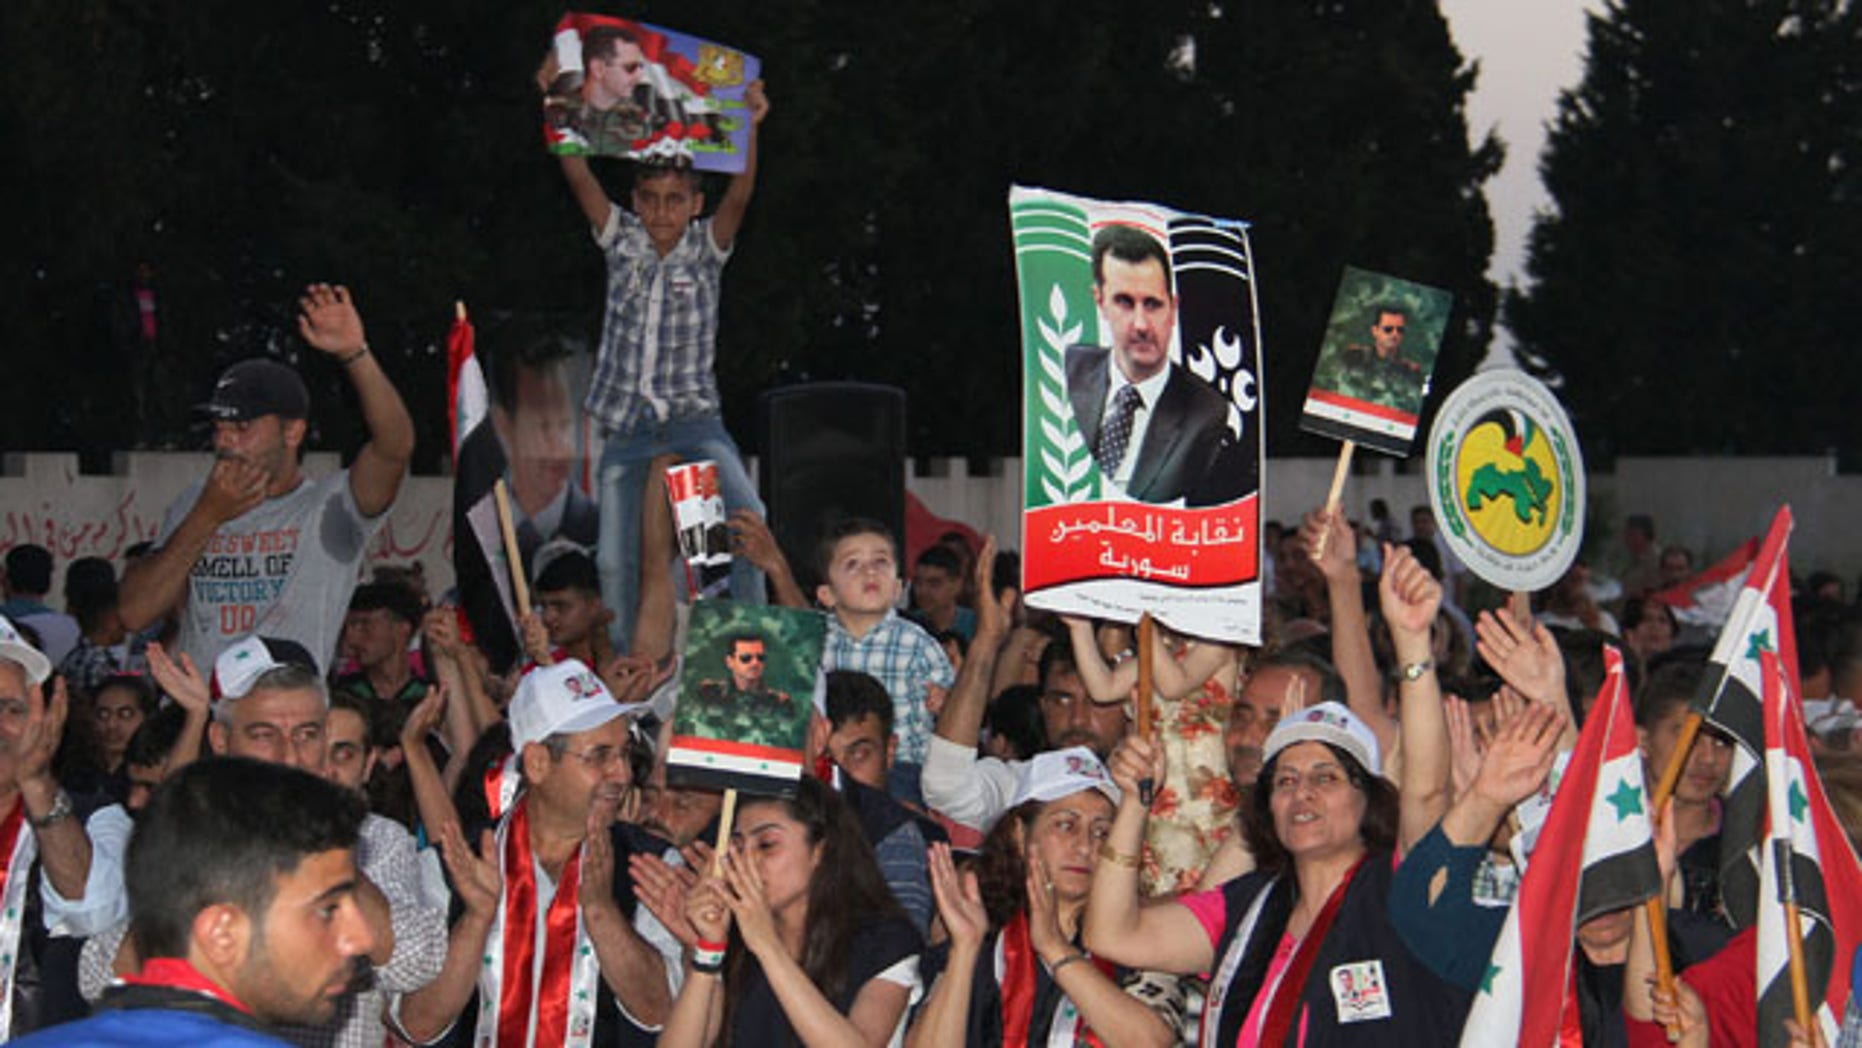 May 31, 2014: Supporters of Syrian President Bashar Assad hold his portraits and wave Syrian flags during a demonstration in support of his candidacy for presidential election in the costal city of Tartous, Syria. (AP Photo/SANA)